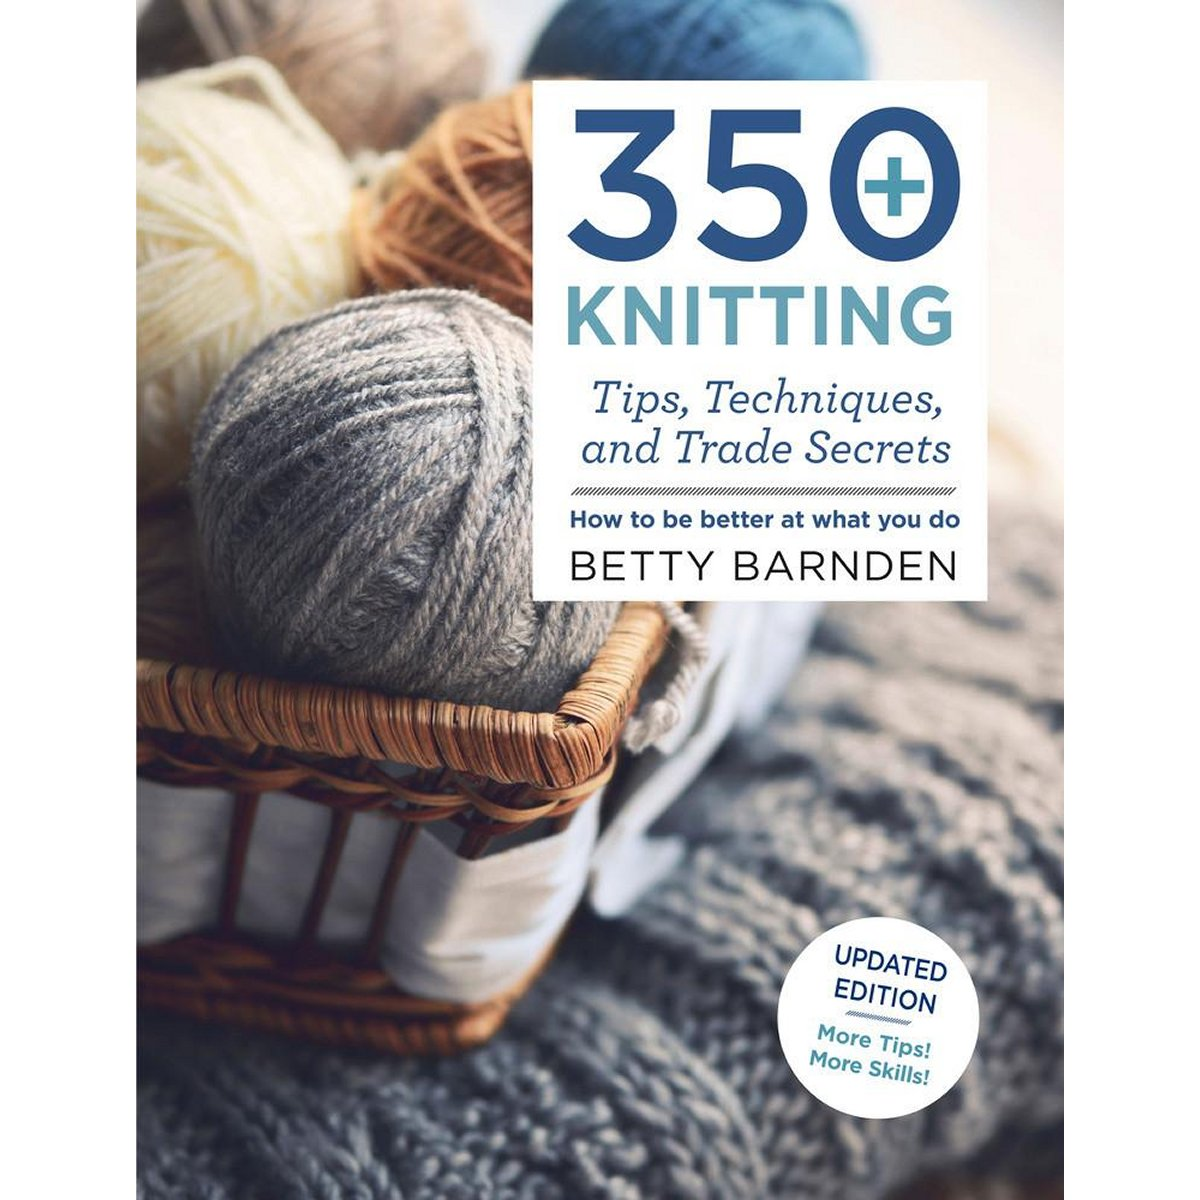 Knitting Tips And Trade Secrets : Knitting tips techniques and trade secrets video